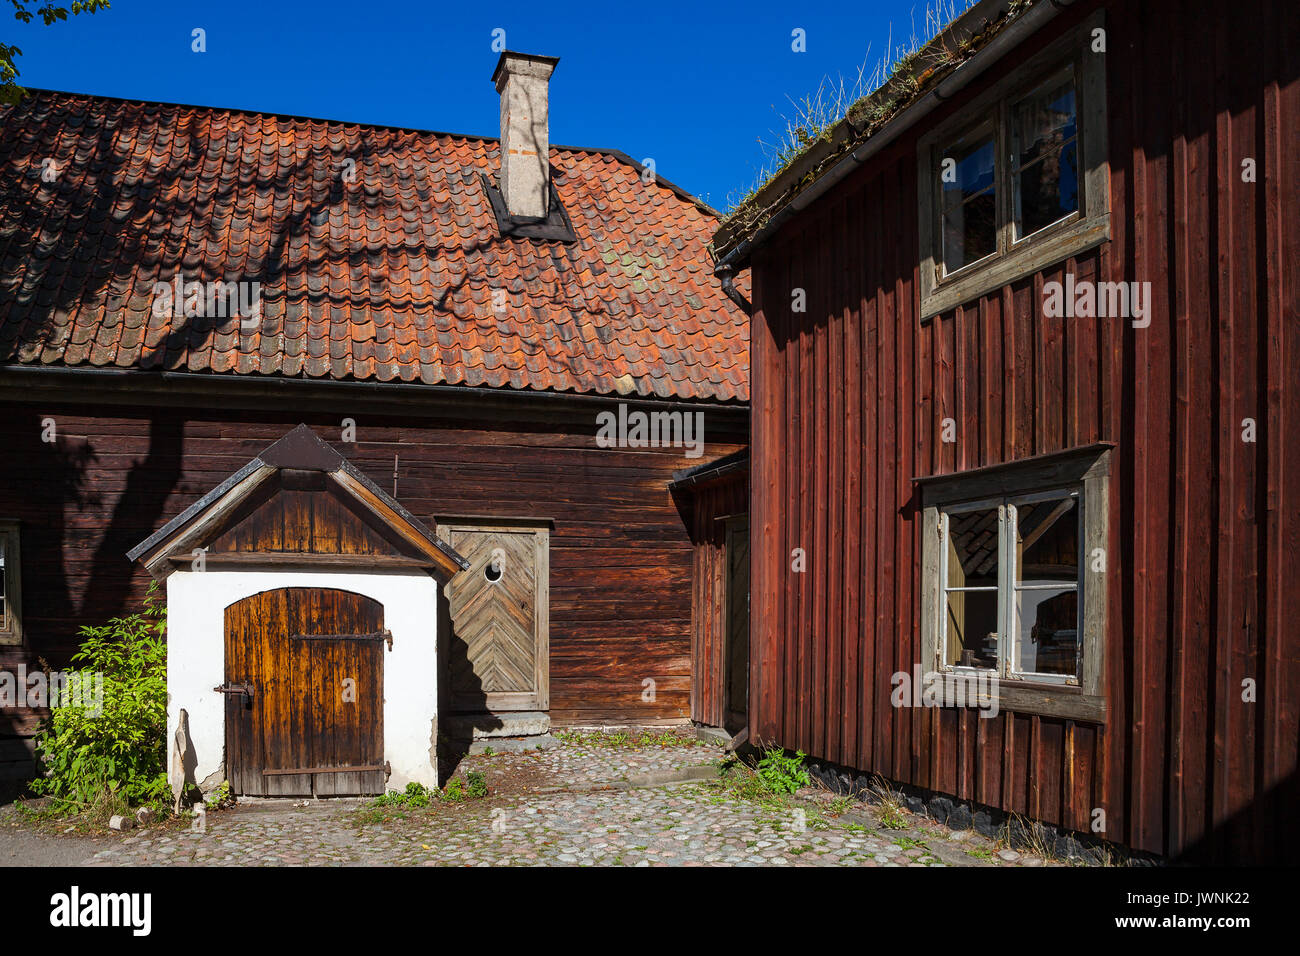 Traditional red wooden dwelling and farm in Skansen museum. Sweden - Stock Image